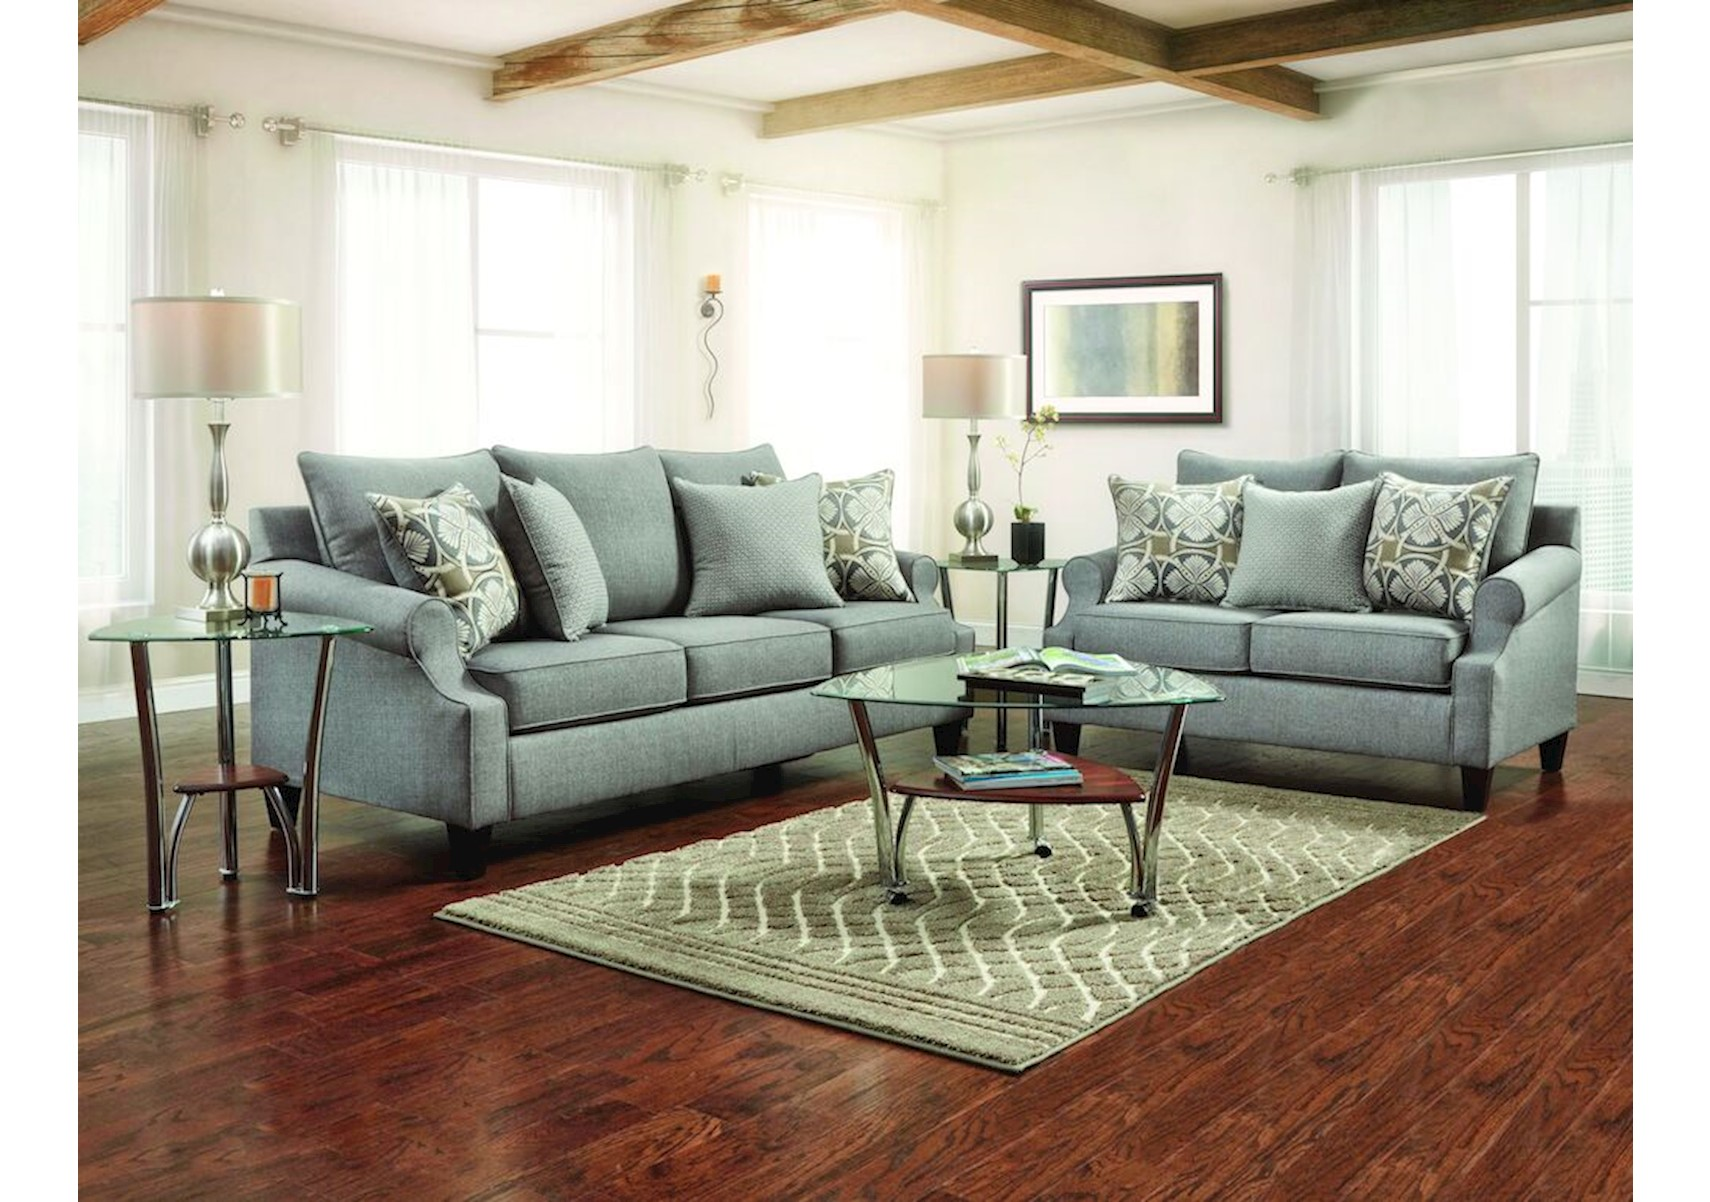 Charming Harper Gray 2 Pc Living Room Set